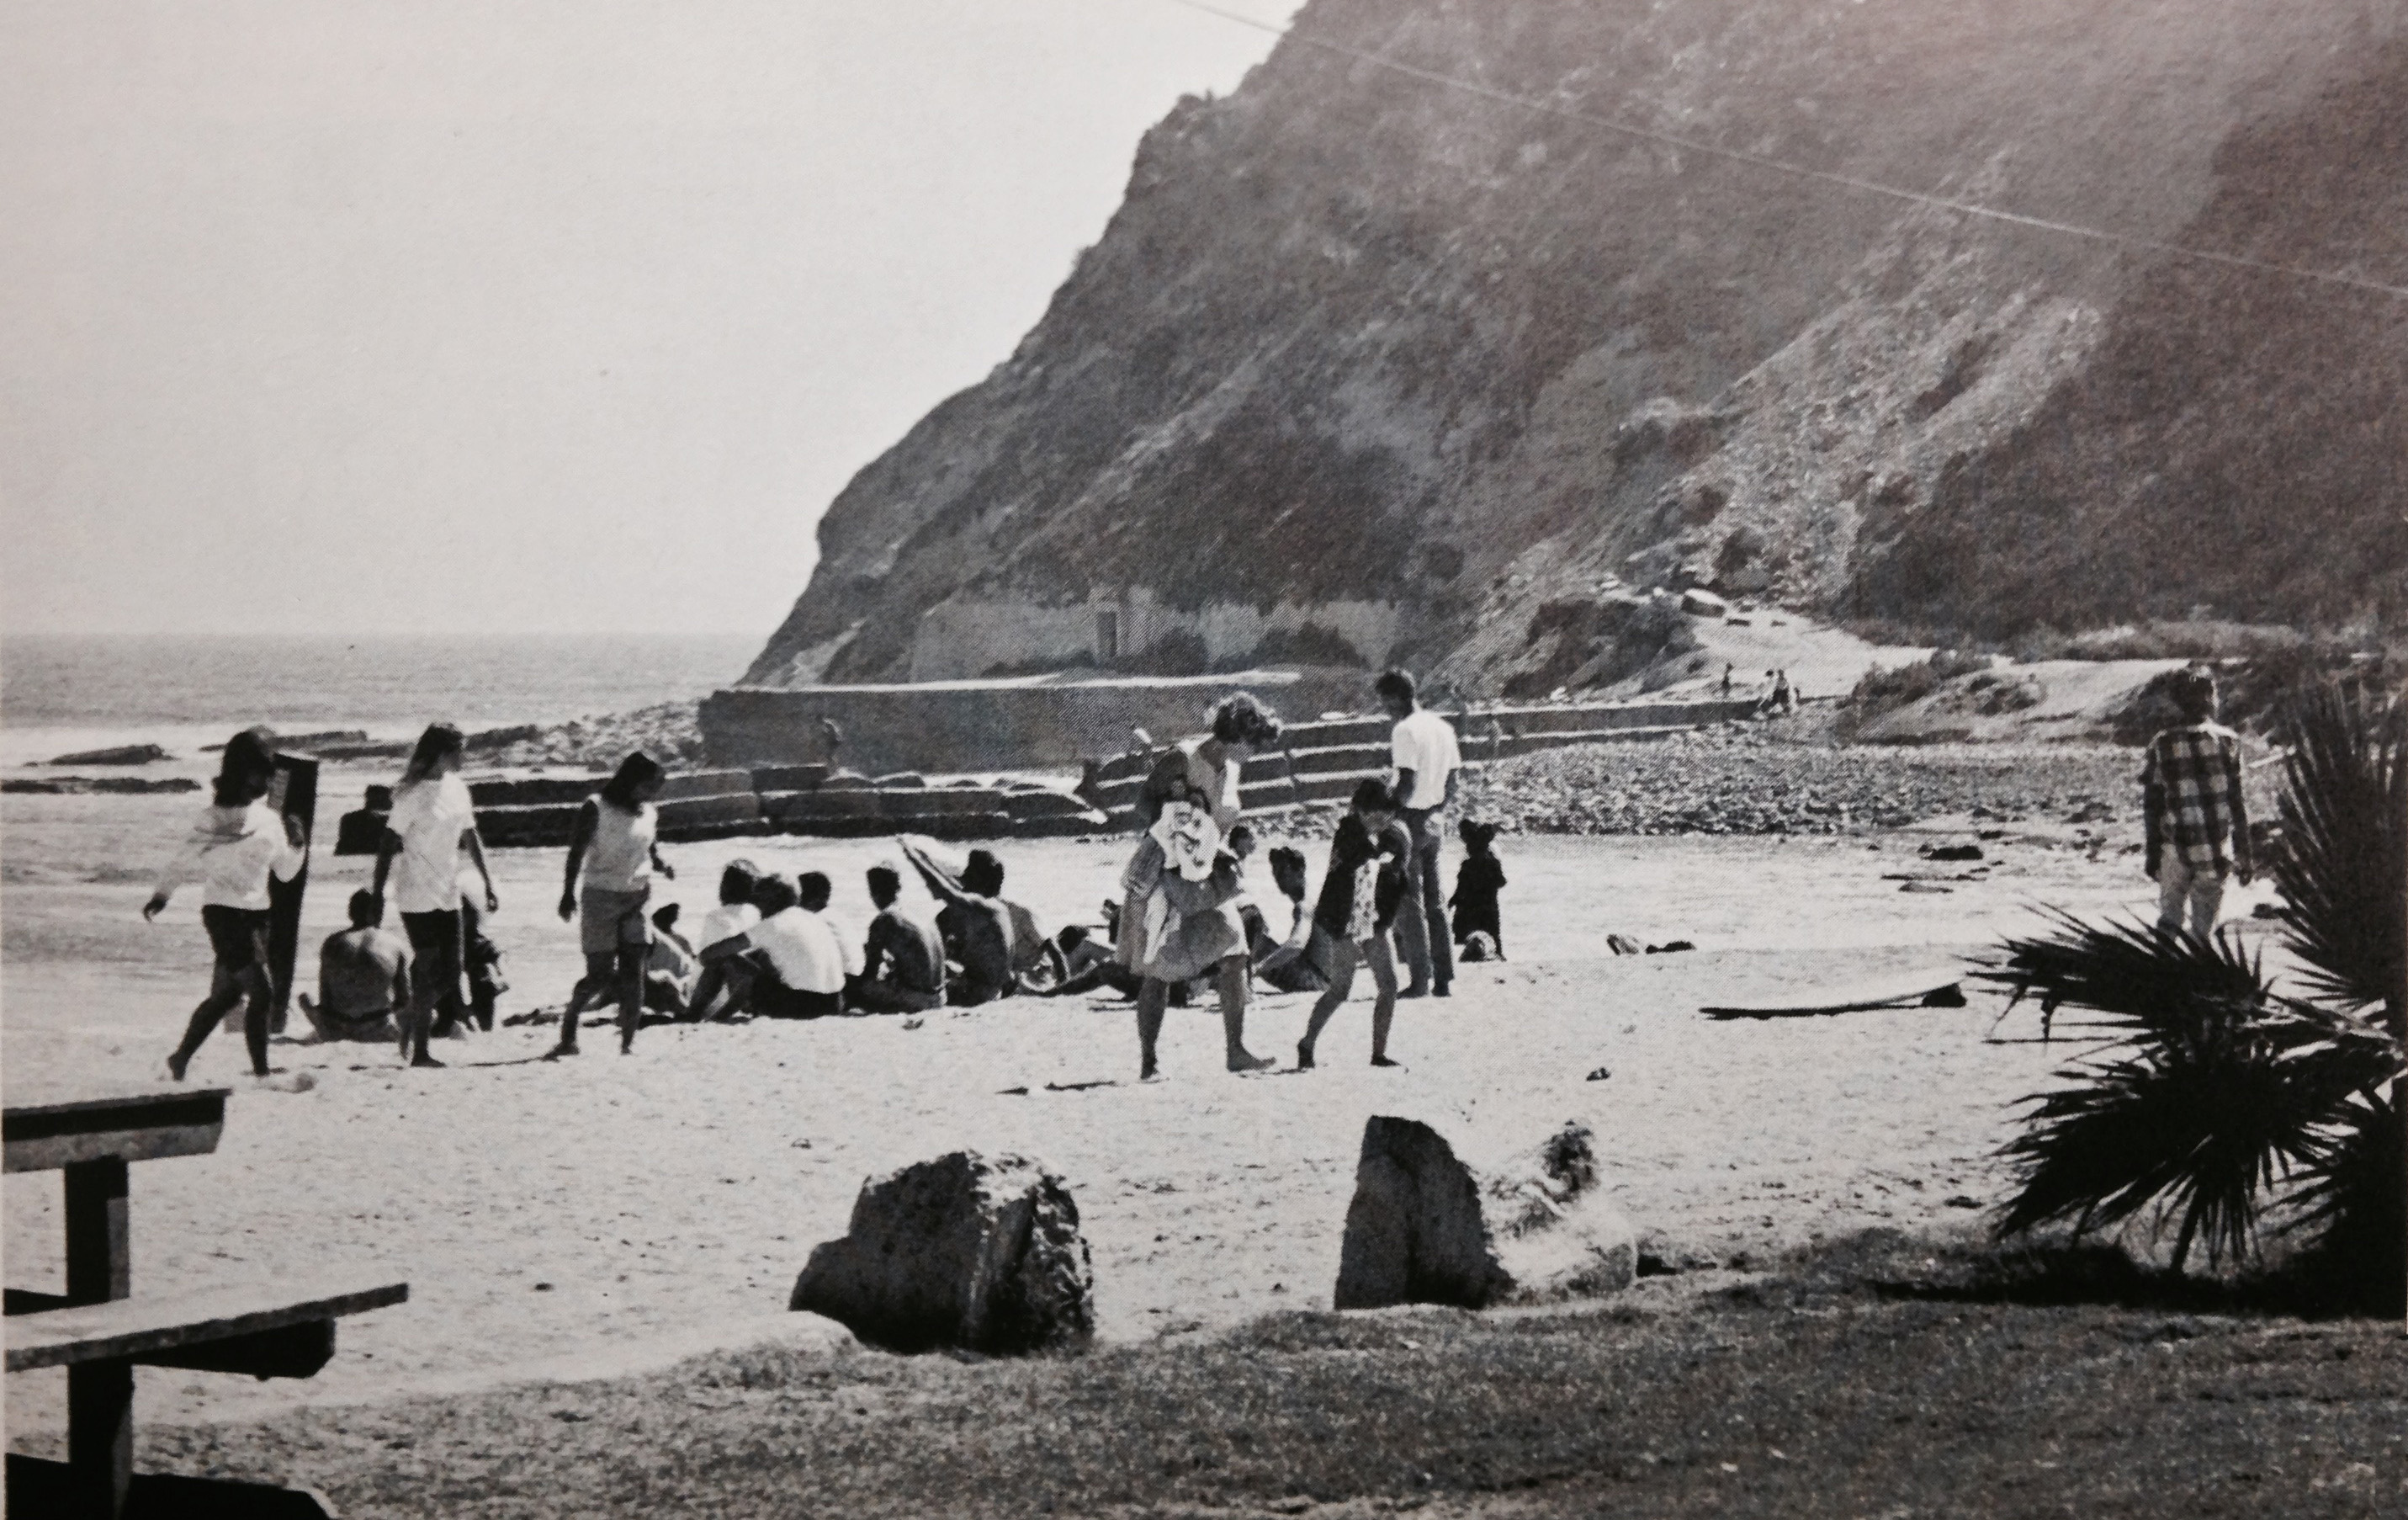 Cabrillo Beach, named for San Pedro's peripatetic discoverer, will eventually be converted to a modern Marina, with the Marine Museum relocating. In the meantime, the cove offers a pleasant spot for swimming and picknicking.